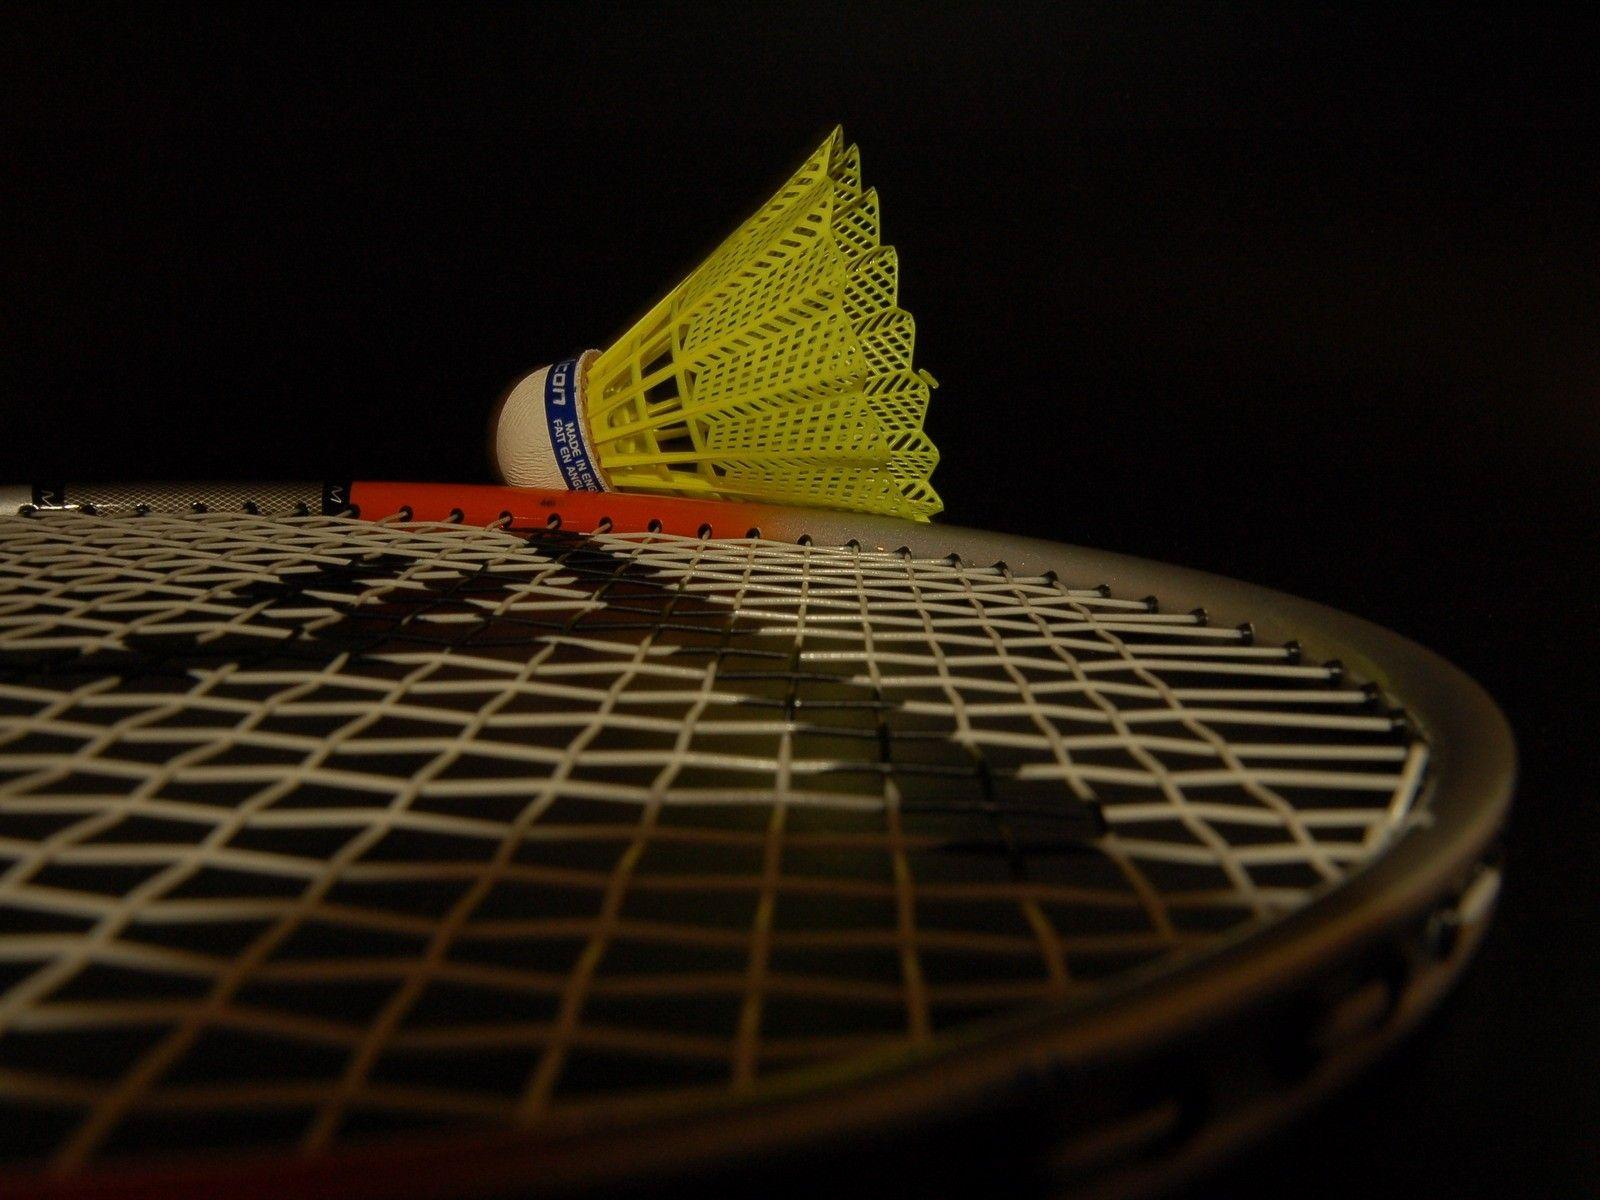 Playing Badminton wallpaper – wallpaper free download